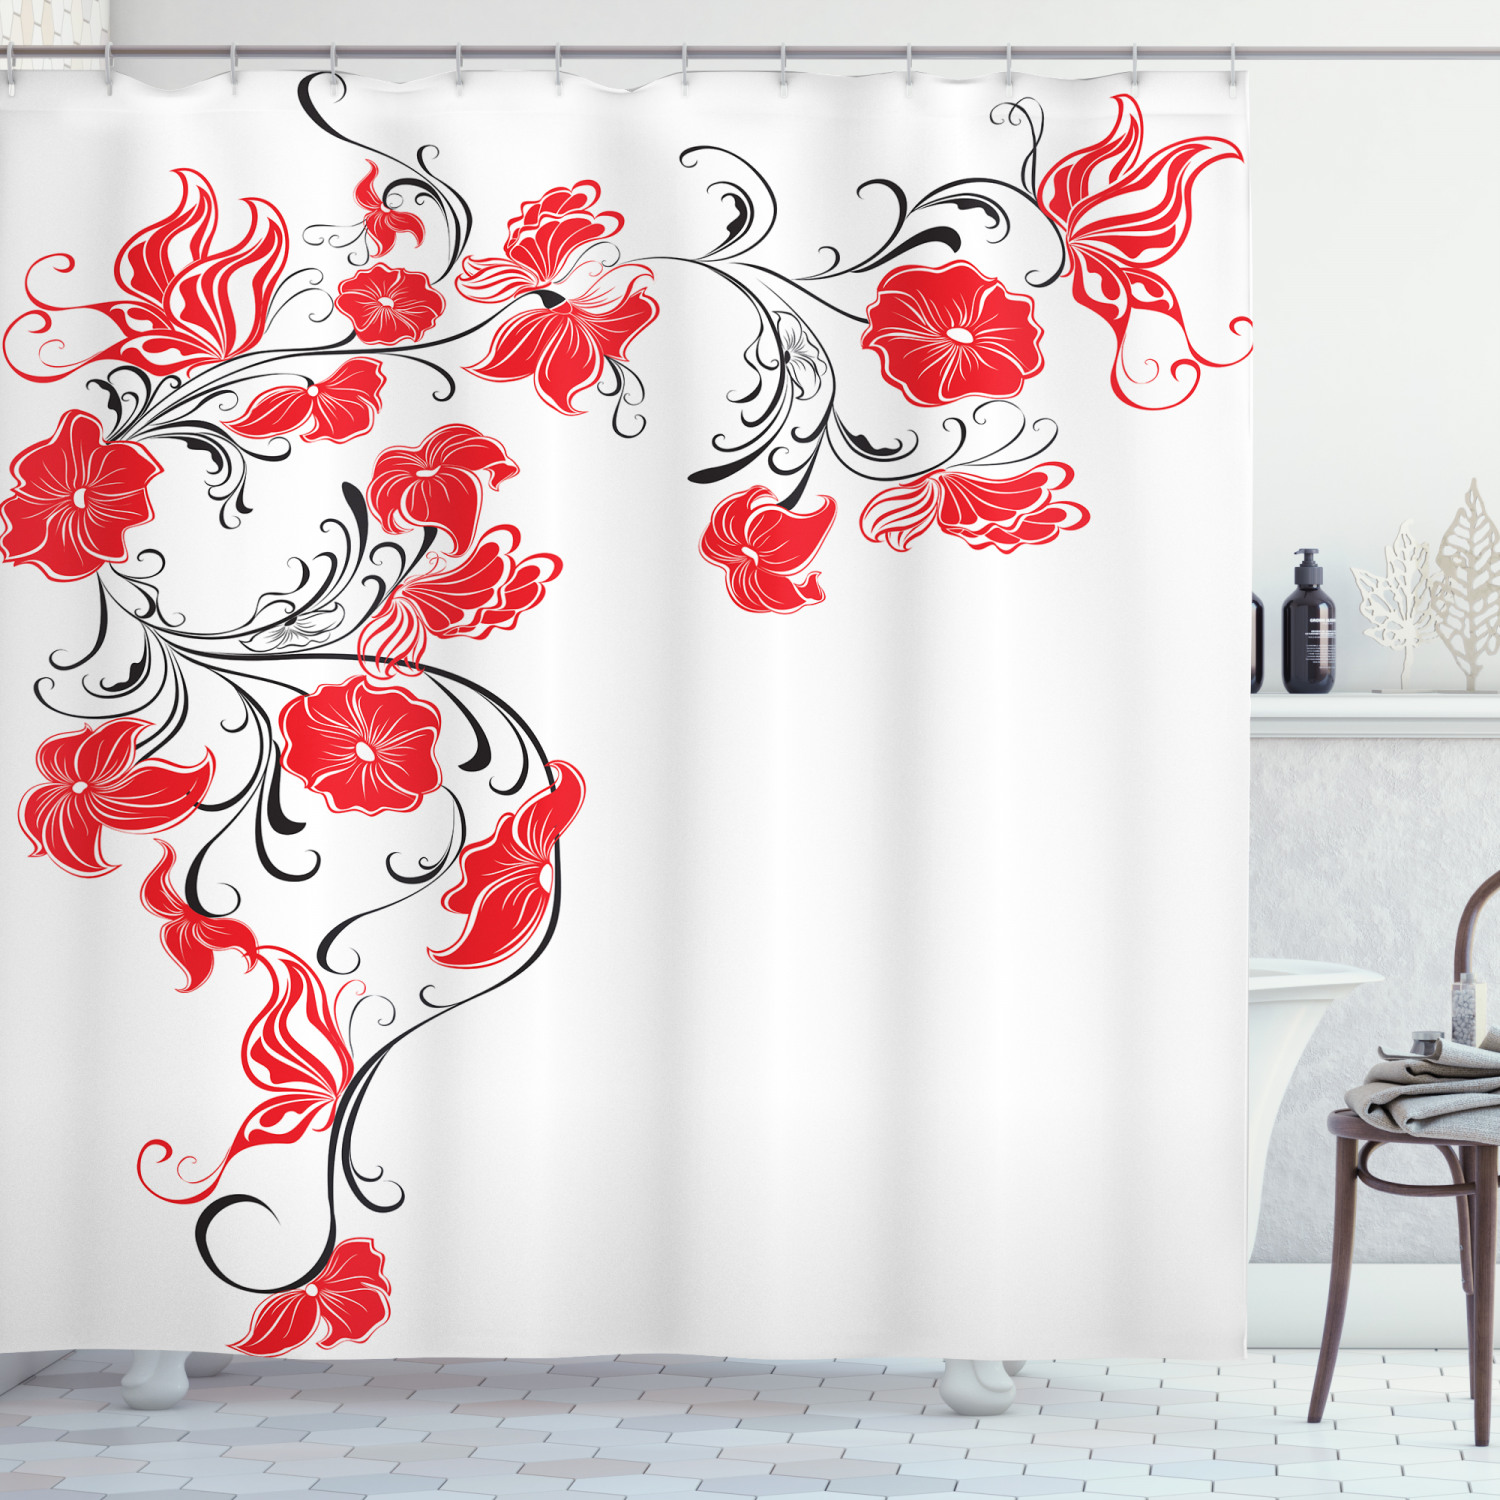 red and black shower curtain japanese asian design flowers swirls ivy and leaves butterflies image fabric bathroom set with hooks scarlet and